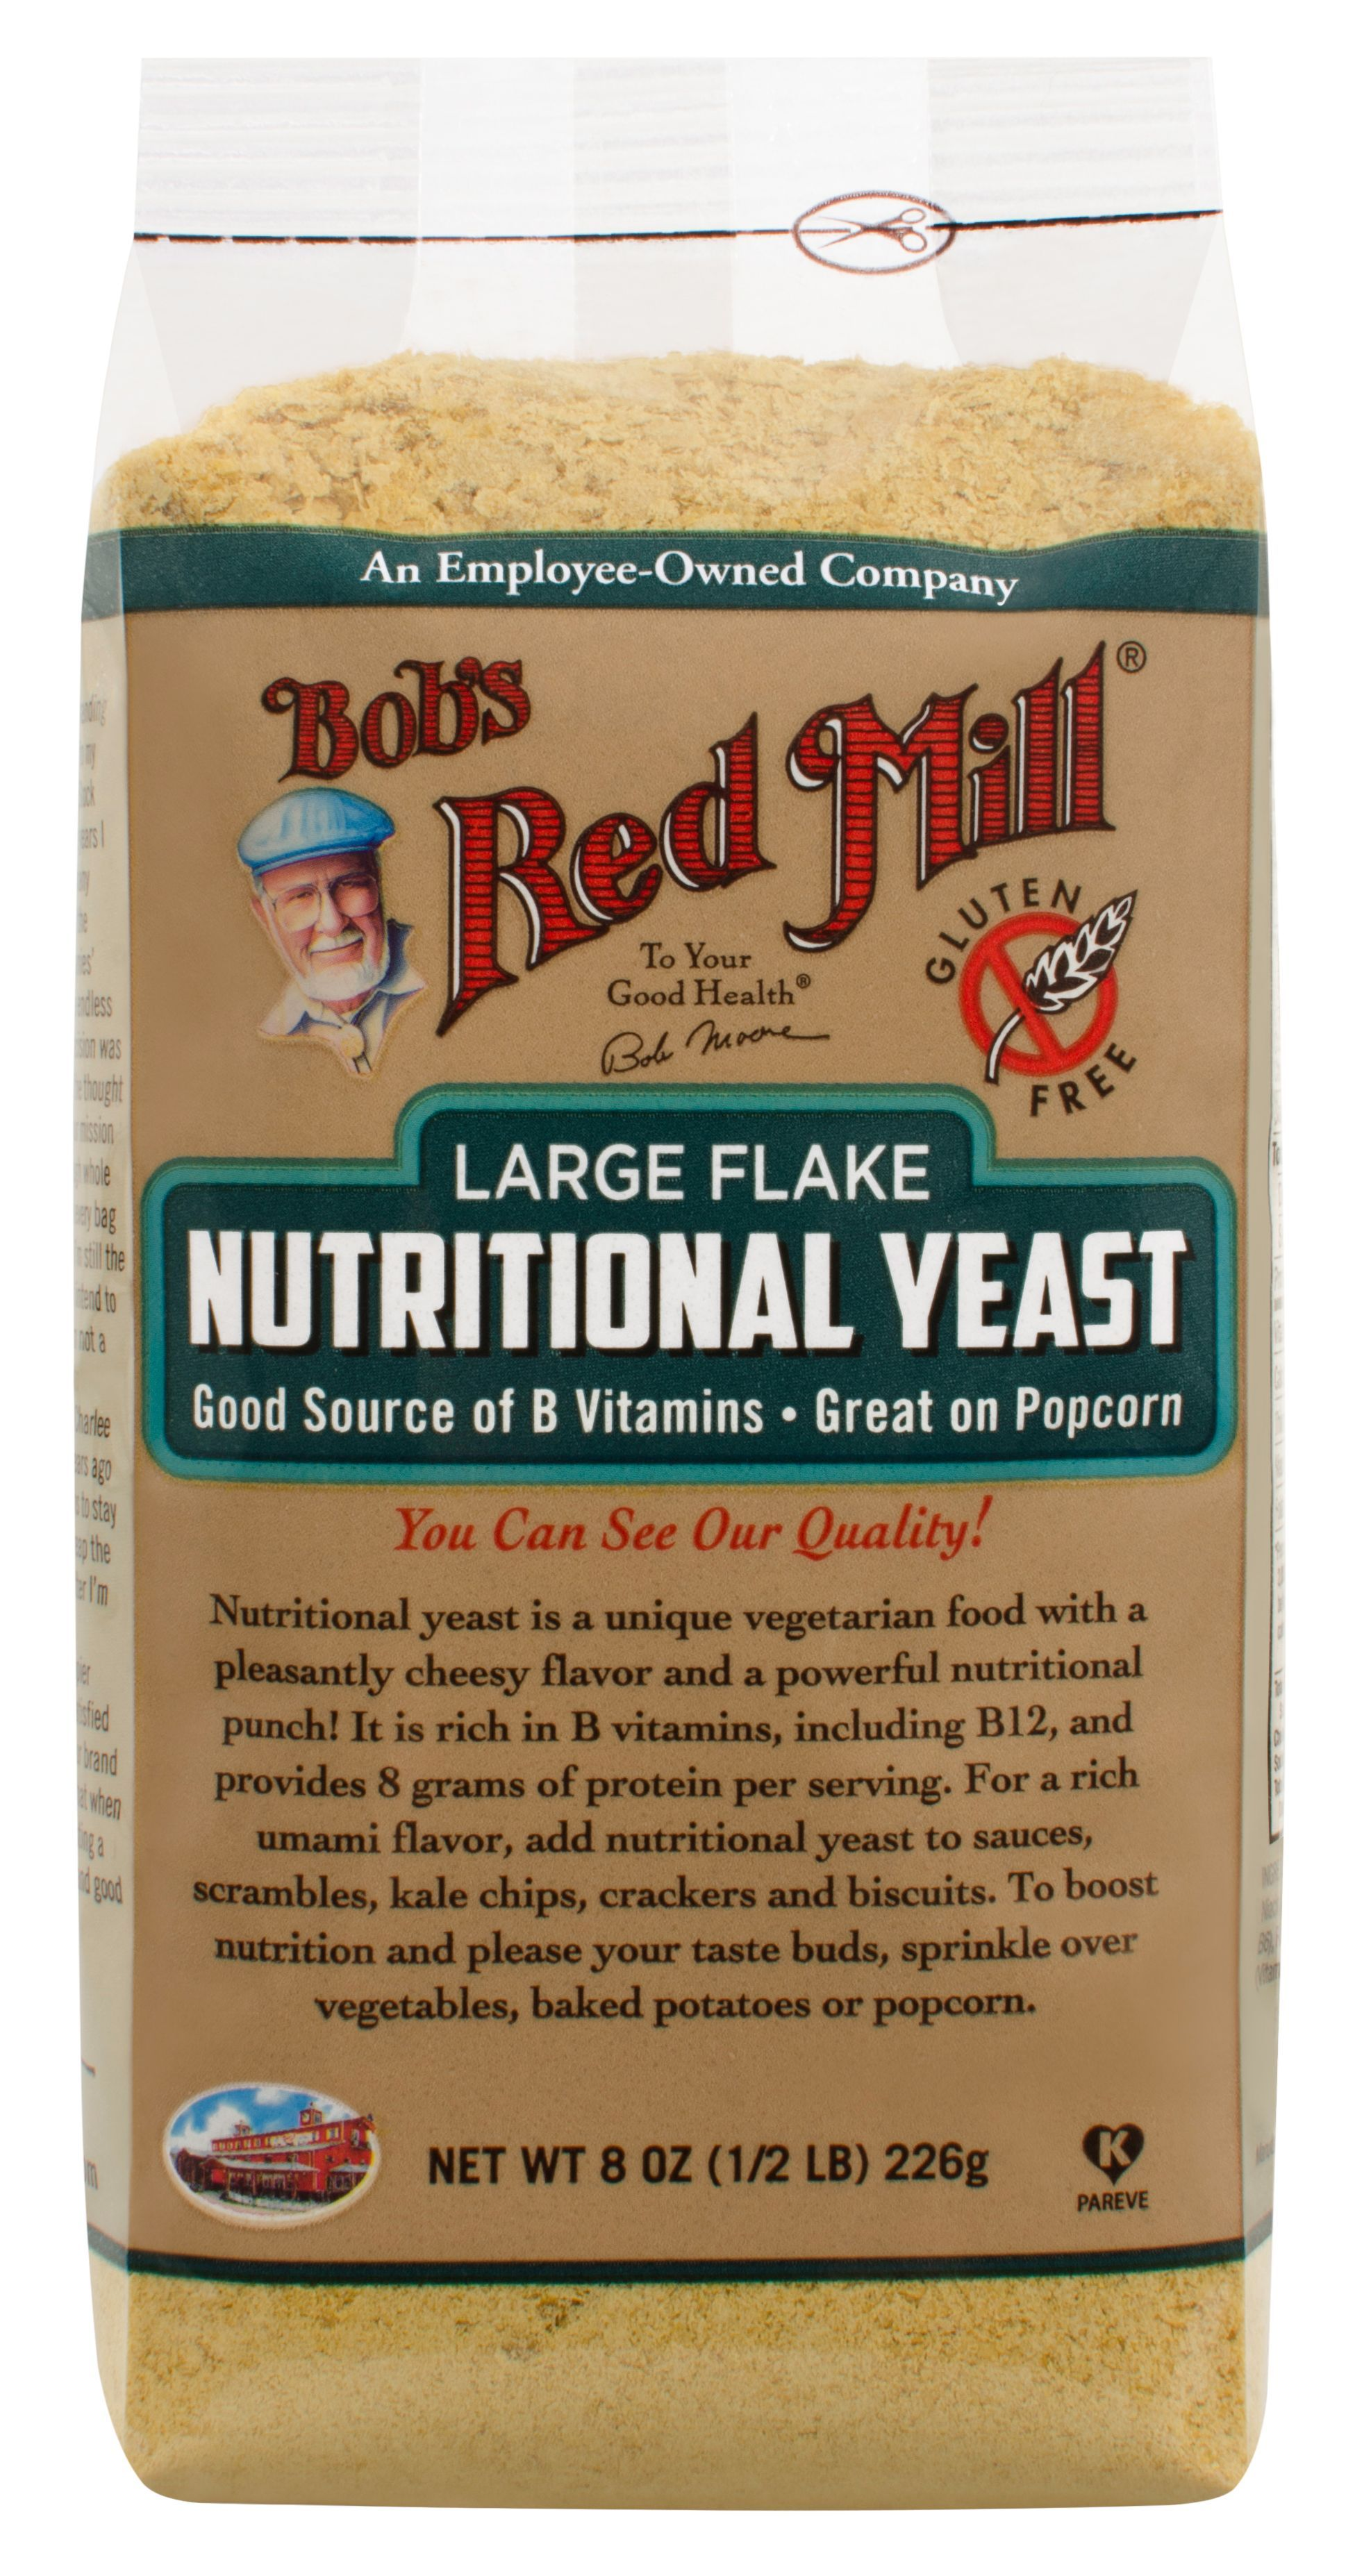 Fresh Pickings Episode 7 Nutritional Yeast (With images